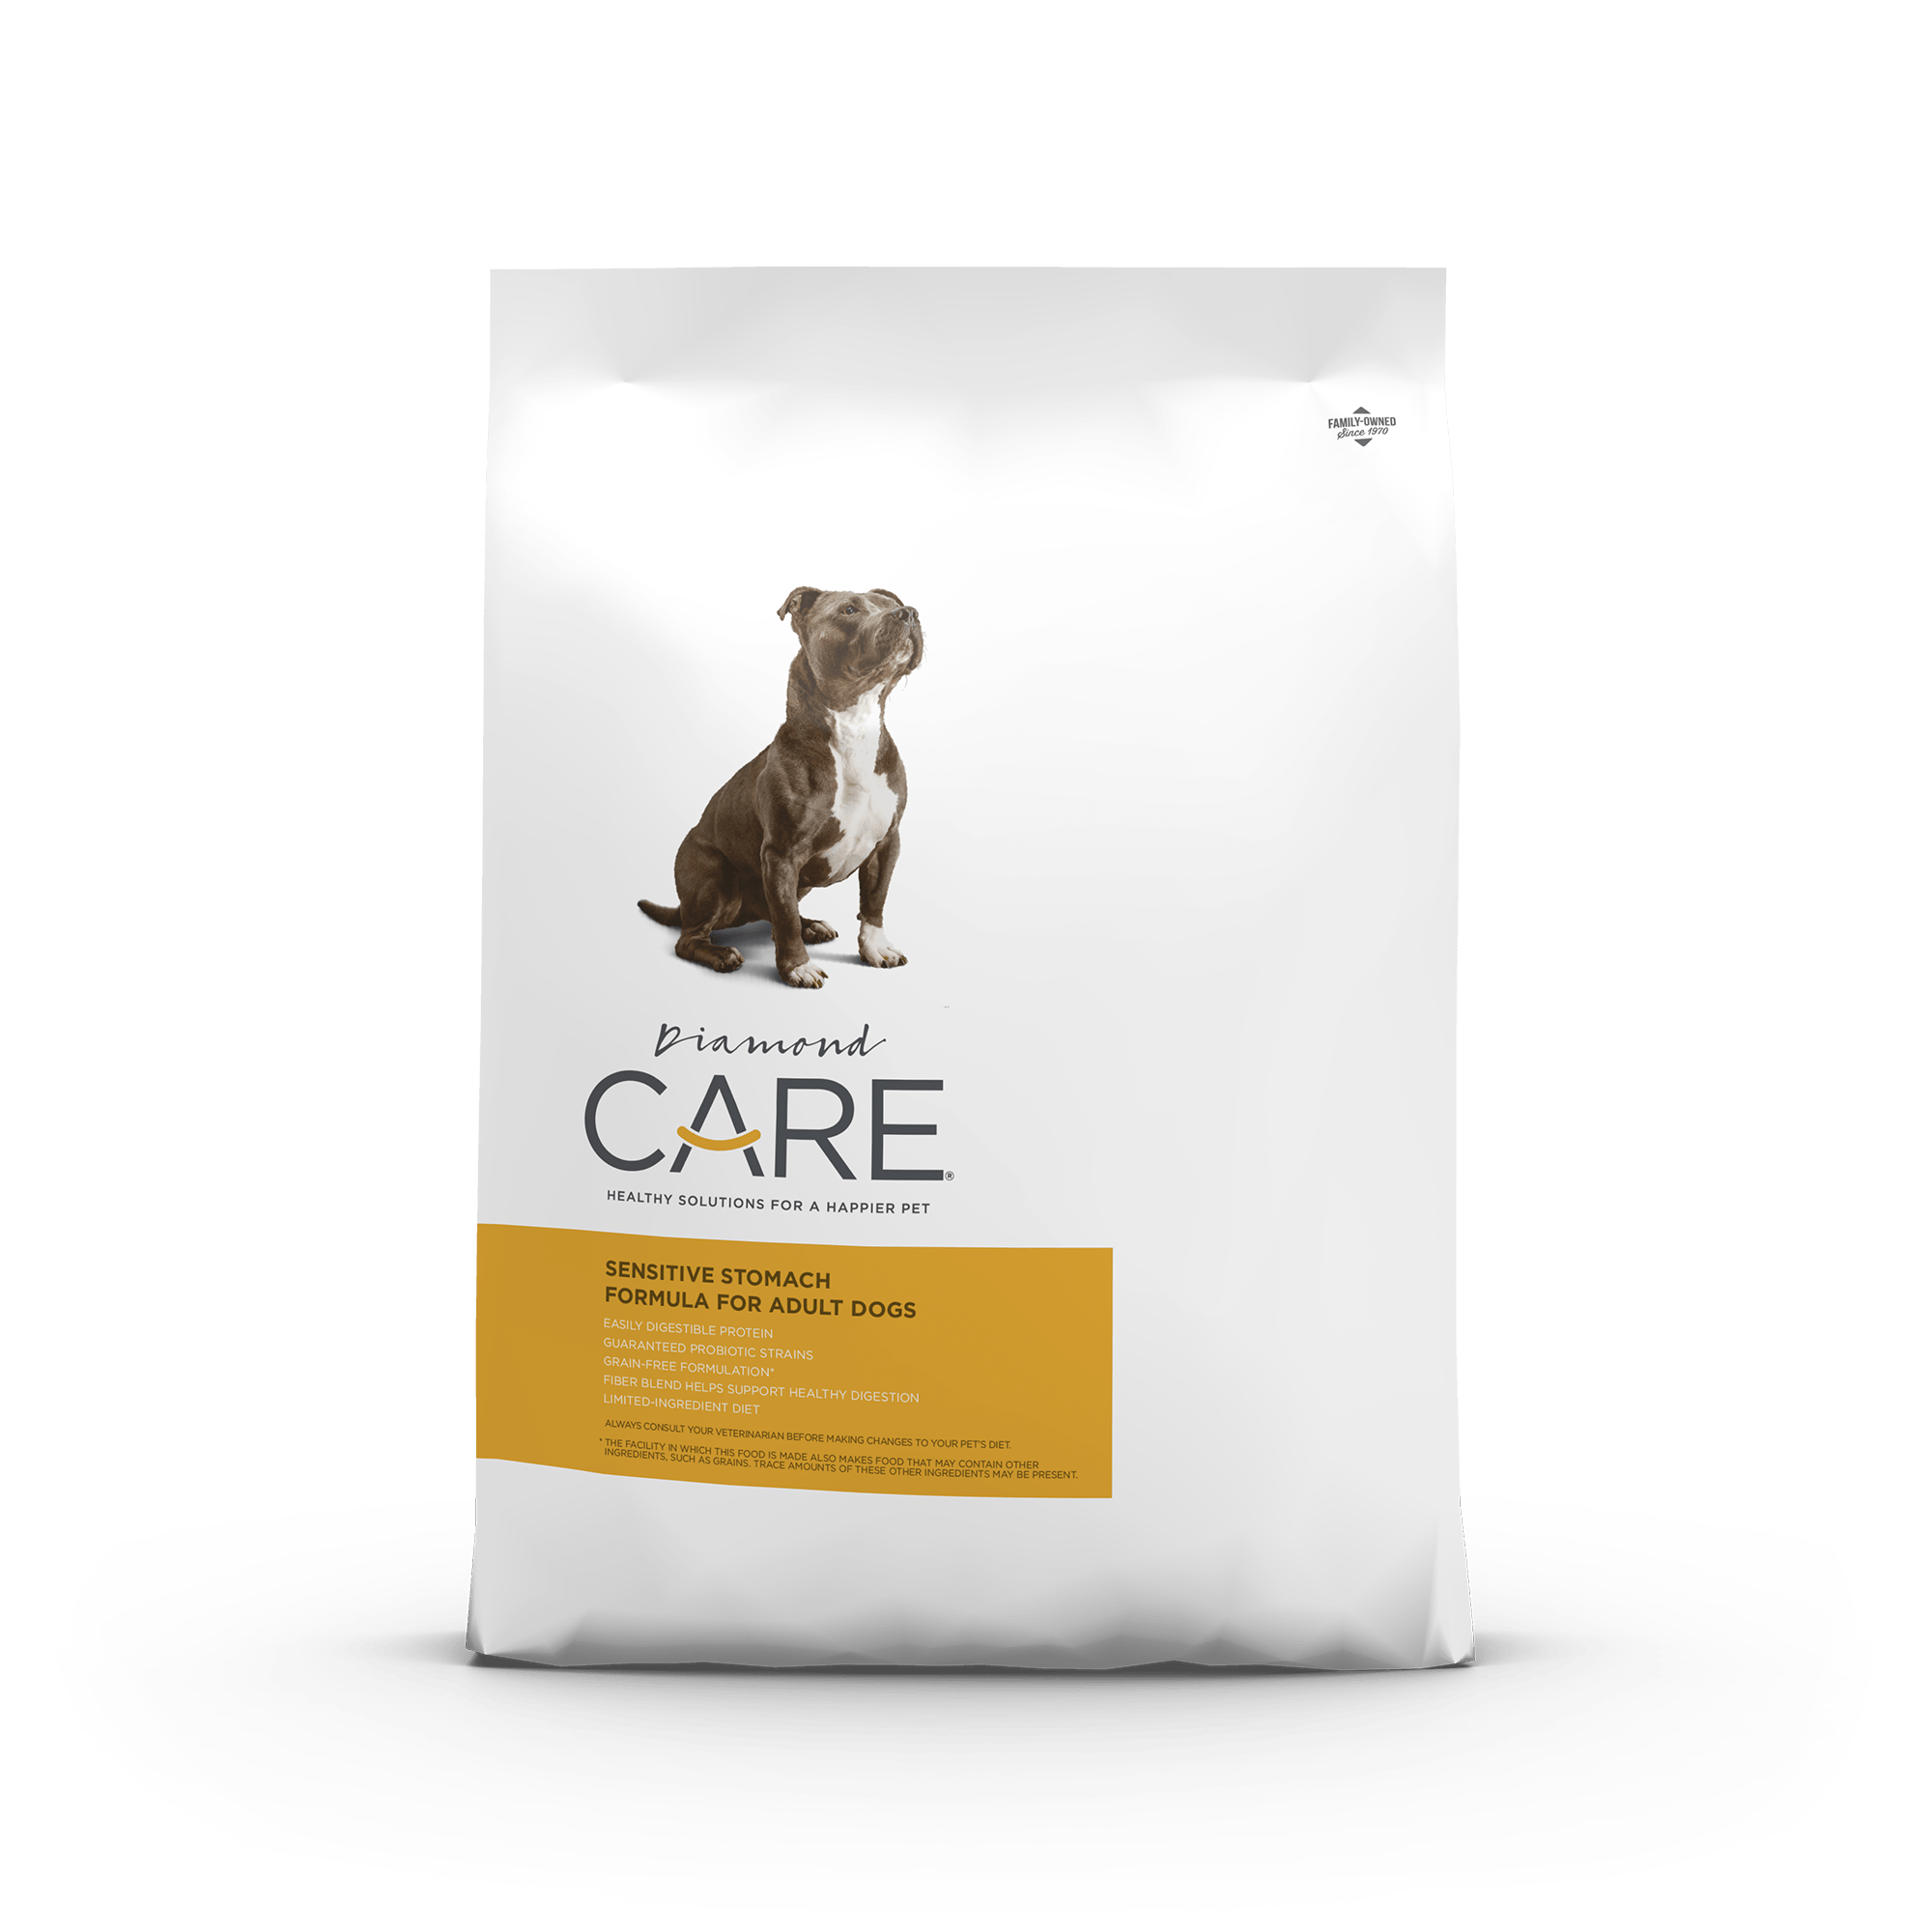 Diamond CARE Sensitive Stomach Formula for Adult Dogs product packaging